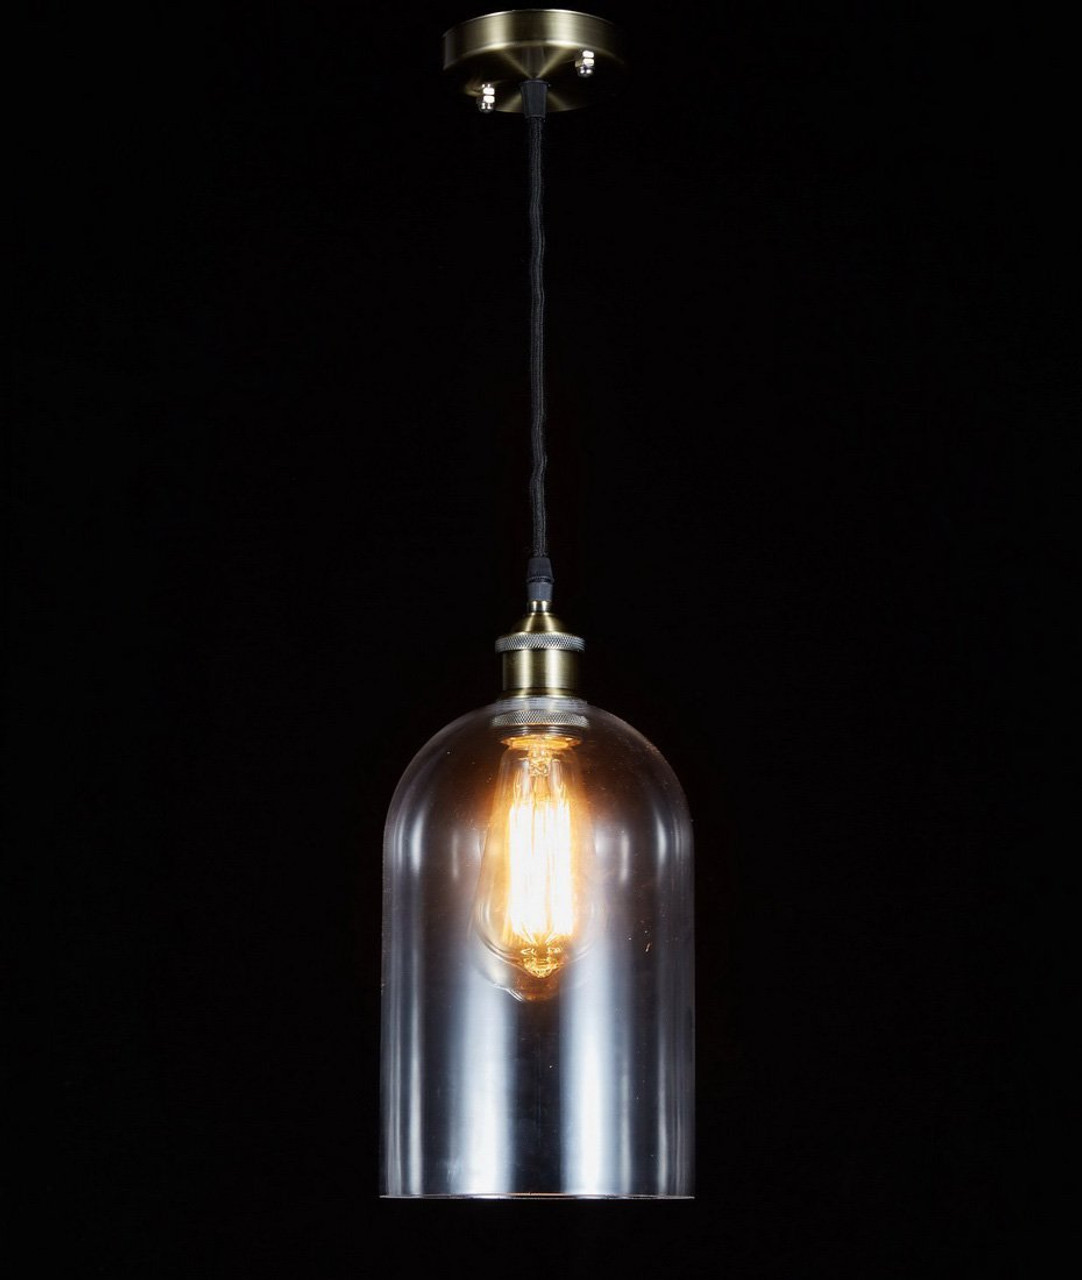 Galaxy Lighting New Galaxy Modern Industrial Edison Vintage Style Pendant 1 Light Hanging Ceiling Lighting Lamp 665